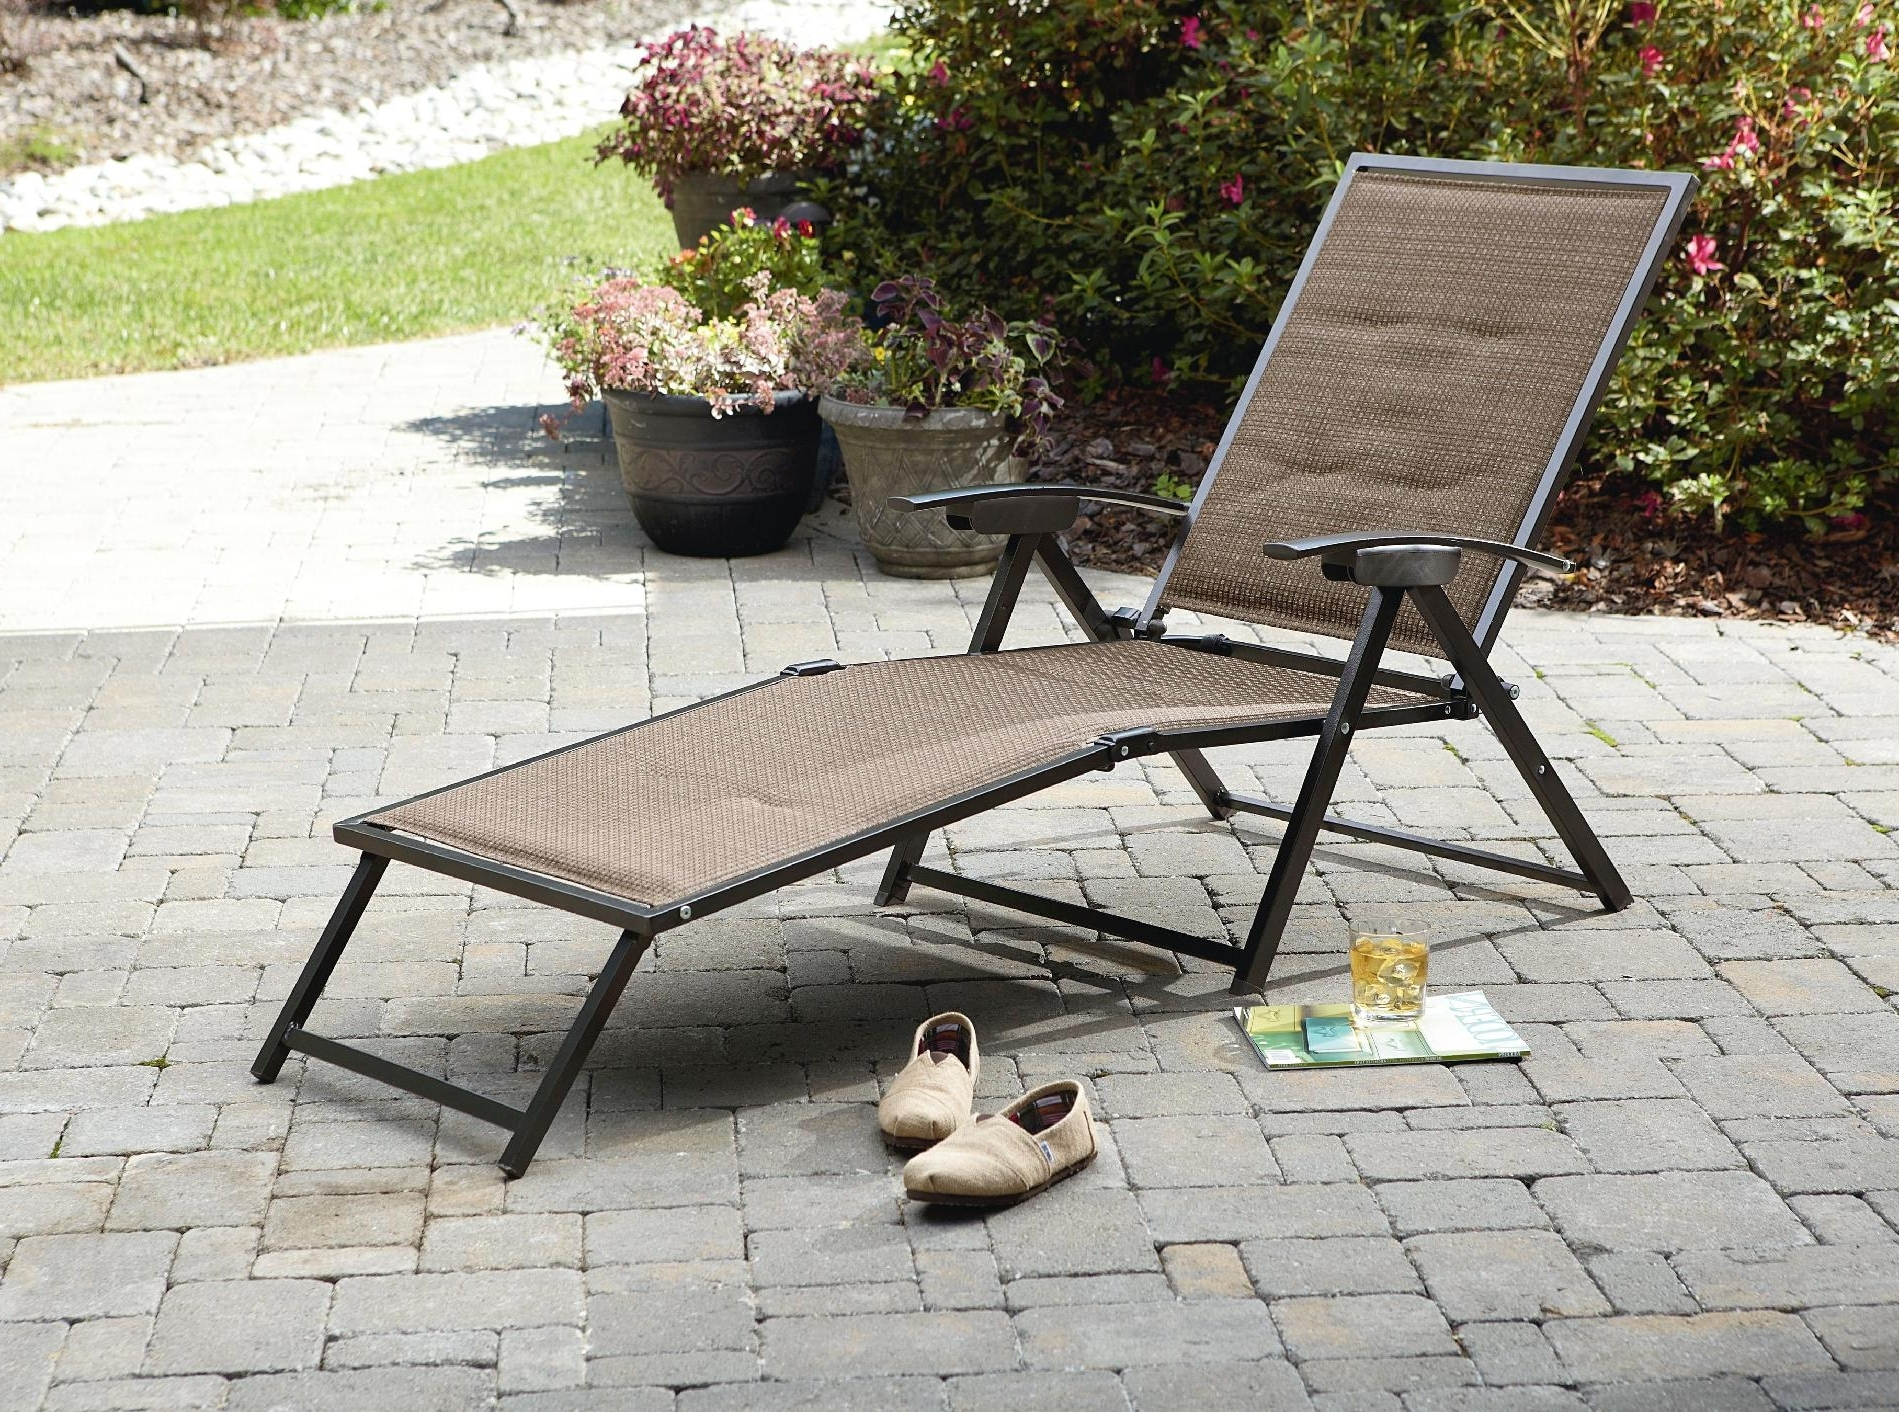 Fancy Patio Chaise Lounge Chairs (View 13 of 15)